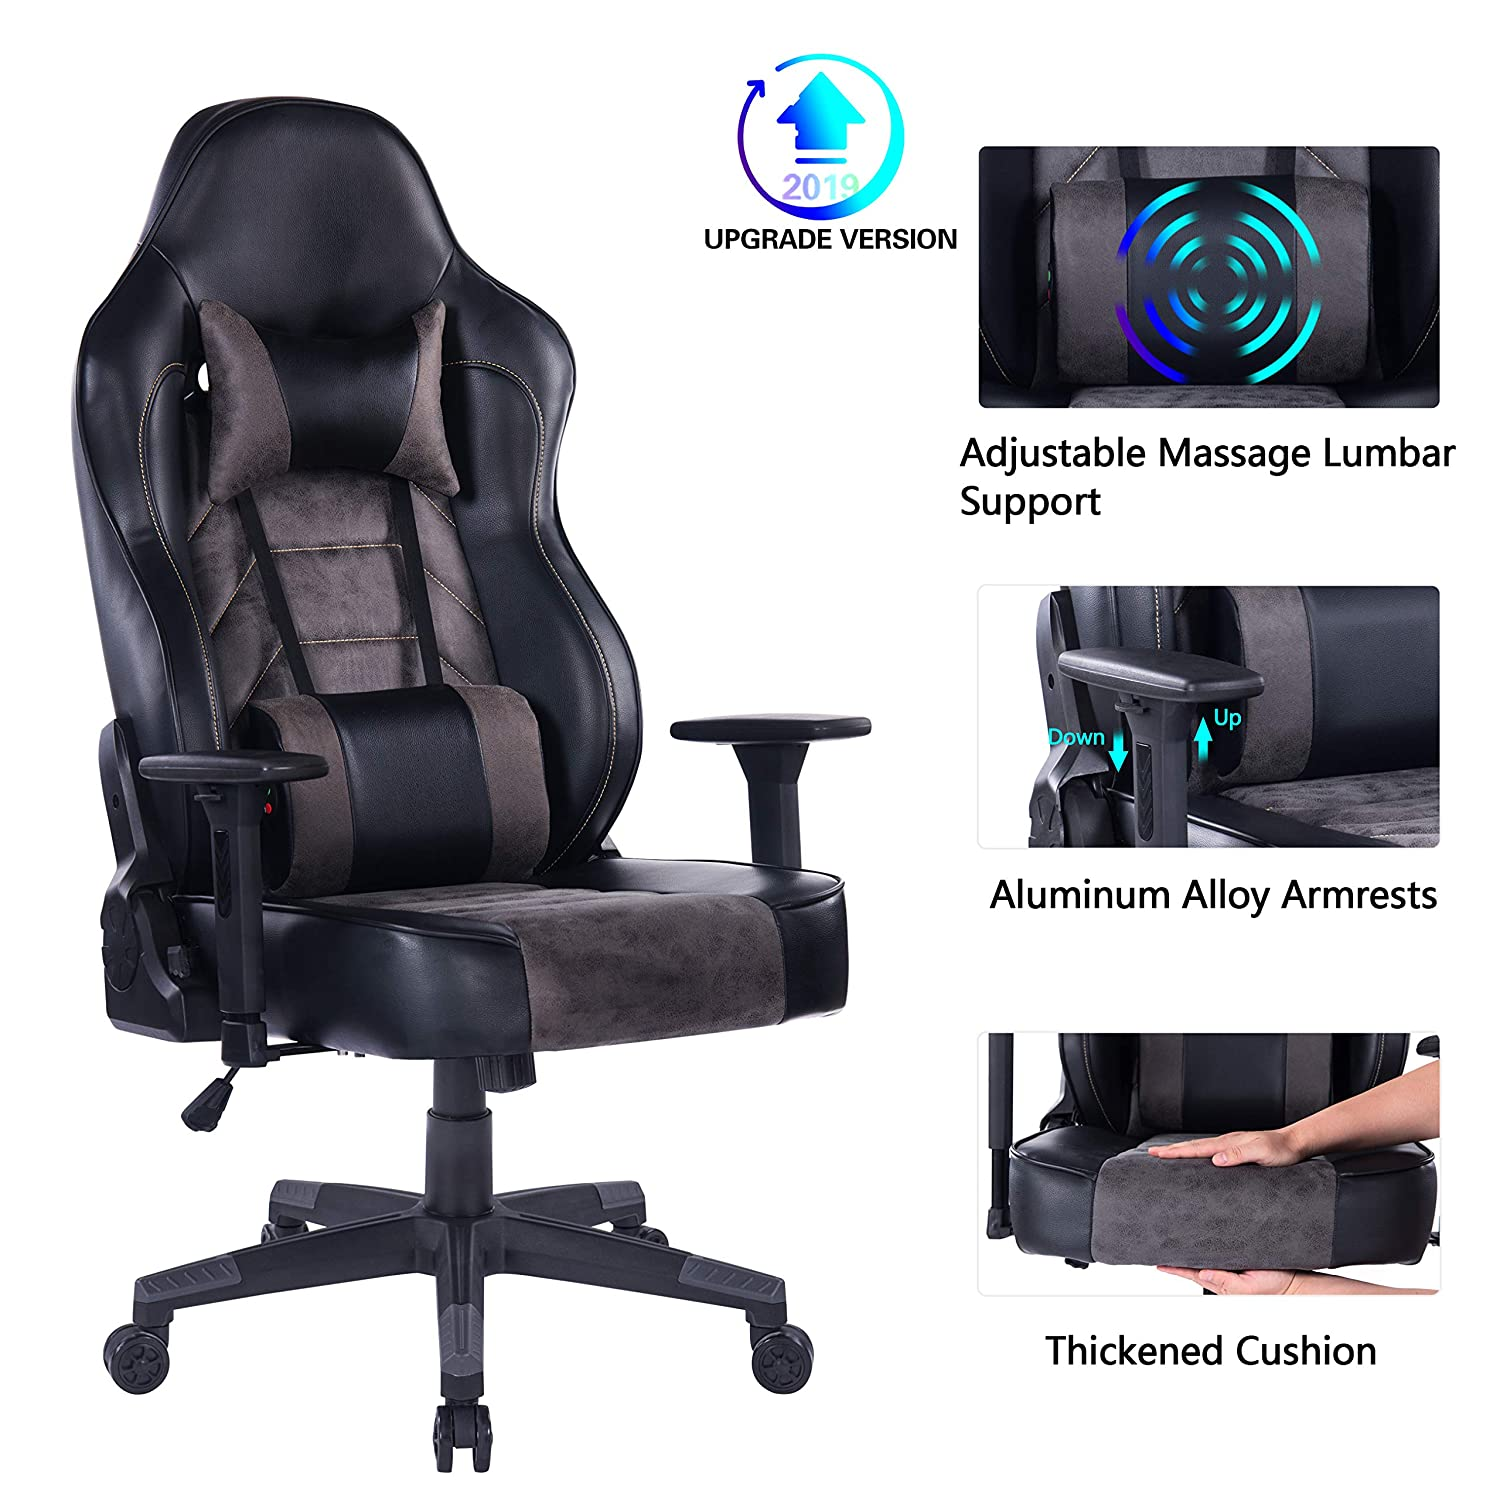 Blue Whale Gaming Chair with Massage Lumbar Pillow, PC Computer Video Game Racing Chair Reclining Executive Ergonomic Office Desk Chair with Headrest BW 291Grey